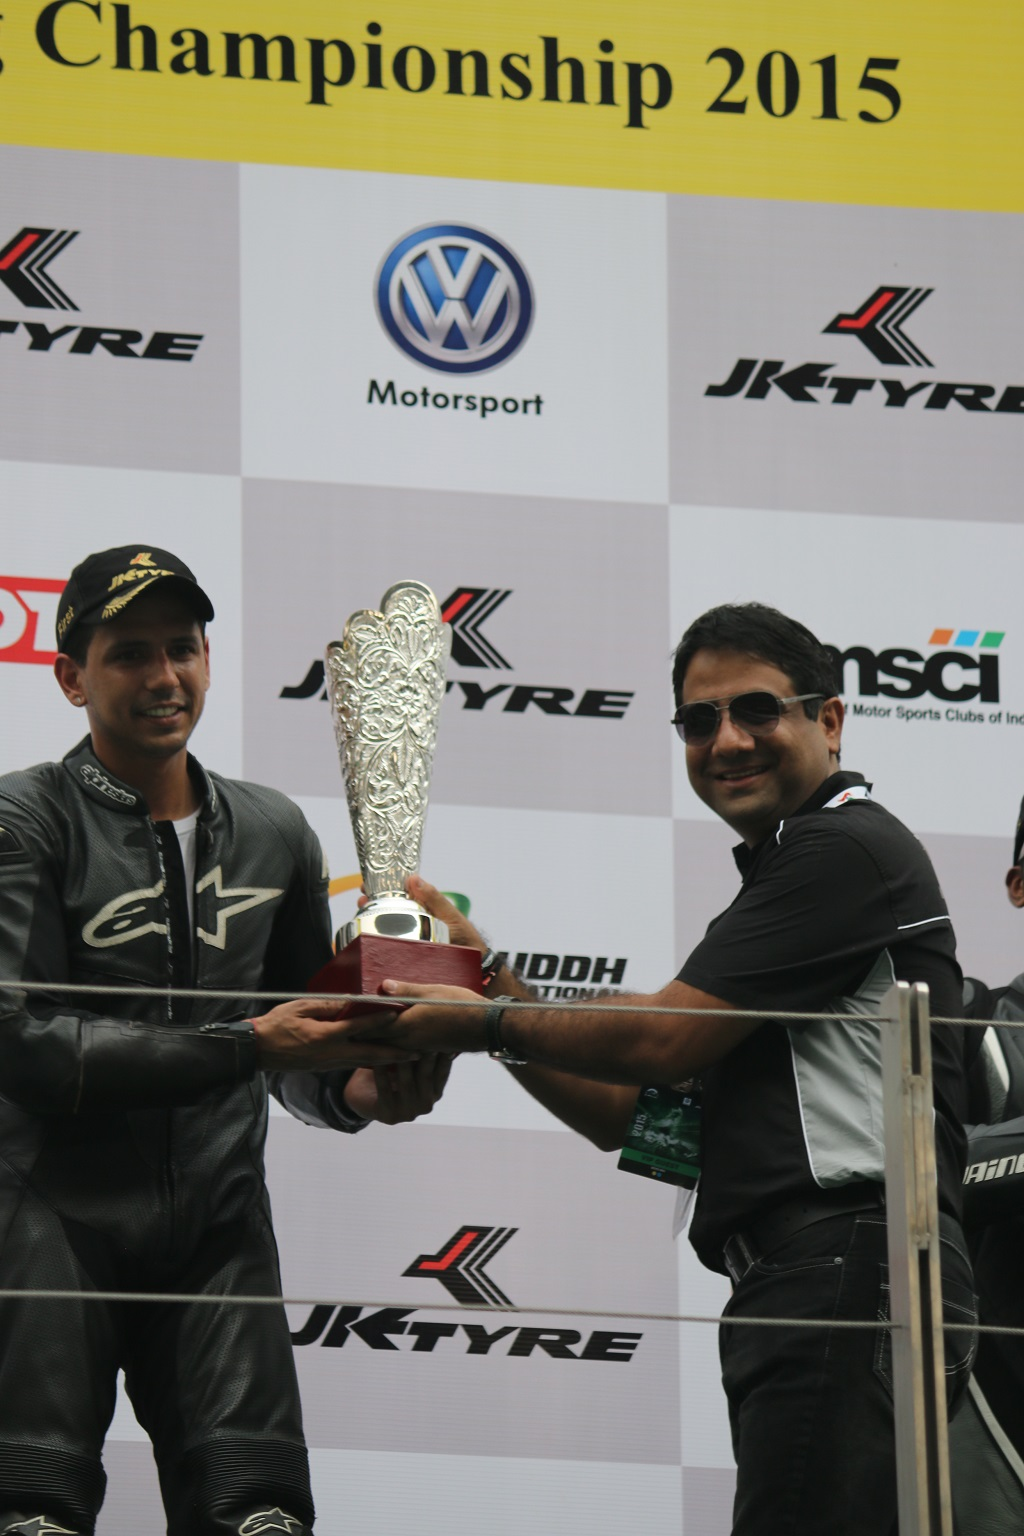 Mr. Vijay Singh receiving the prize from Mr. Vimal Sumbly copy